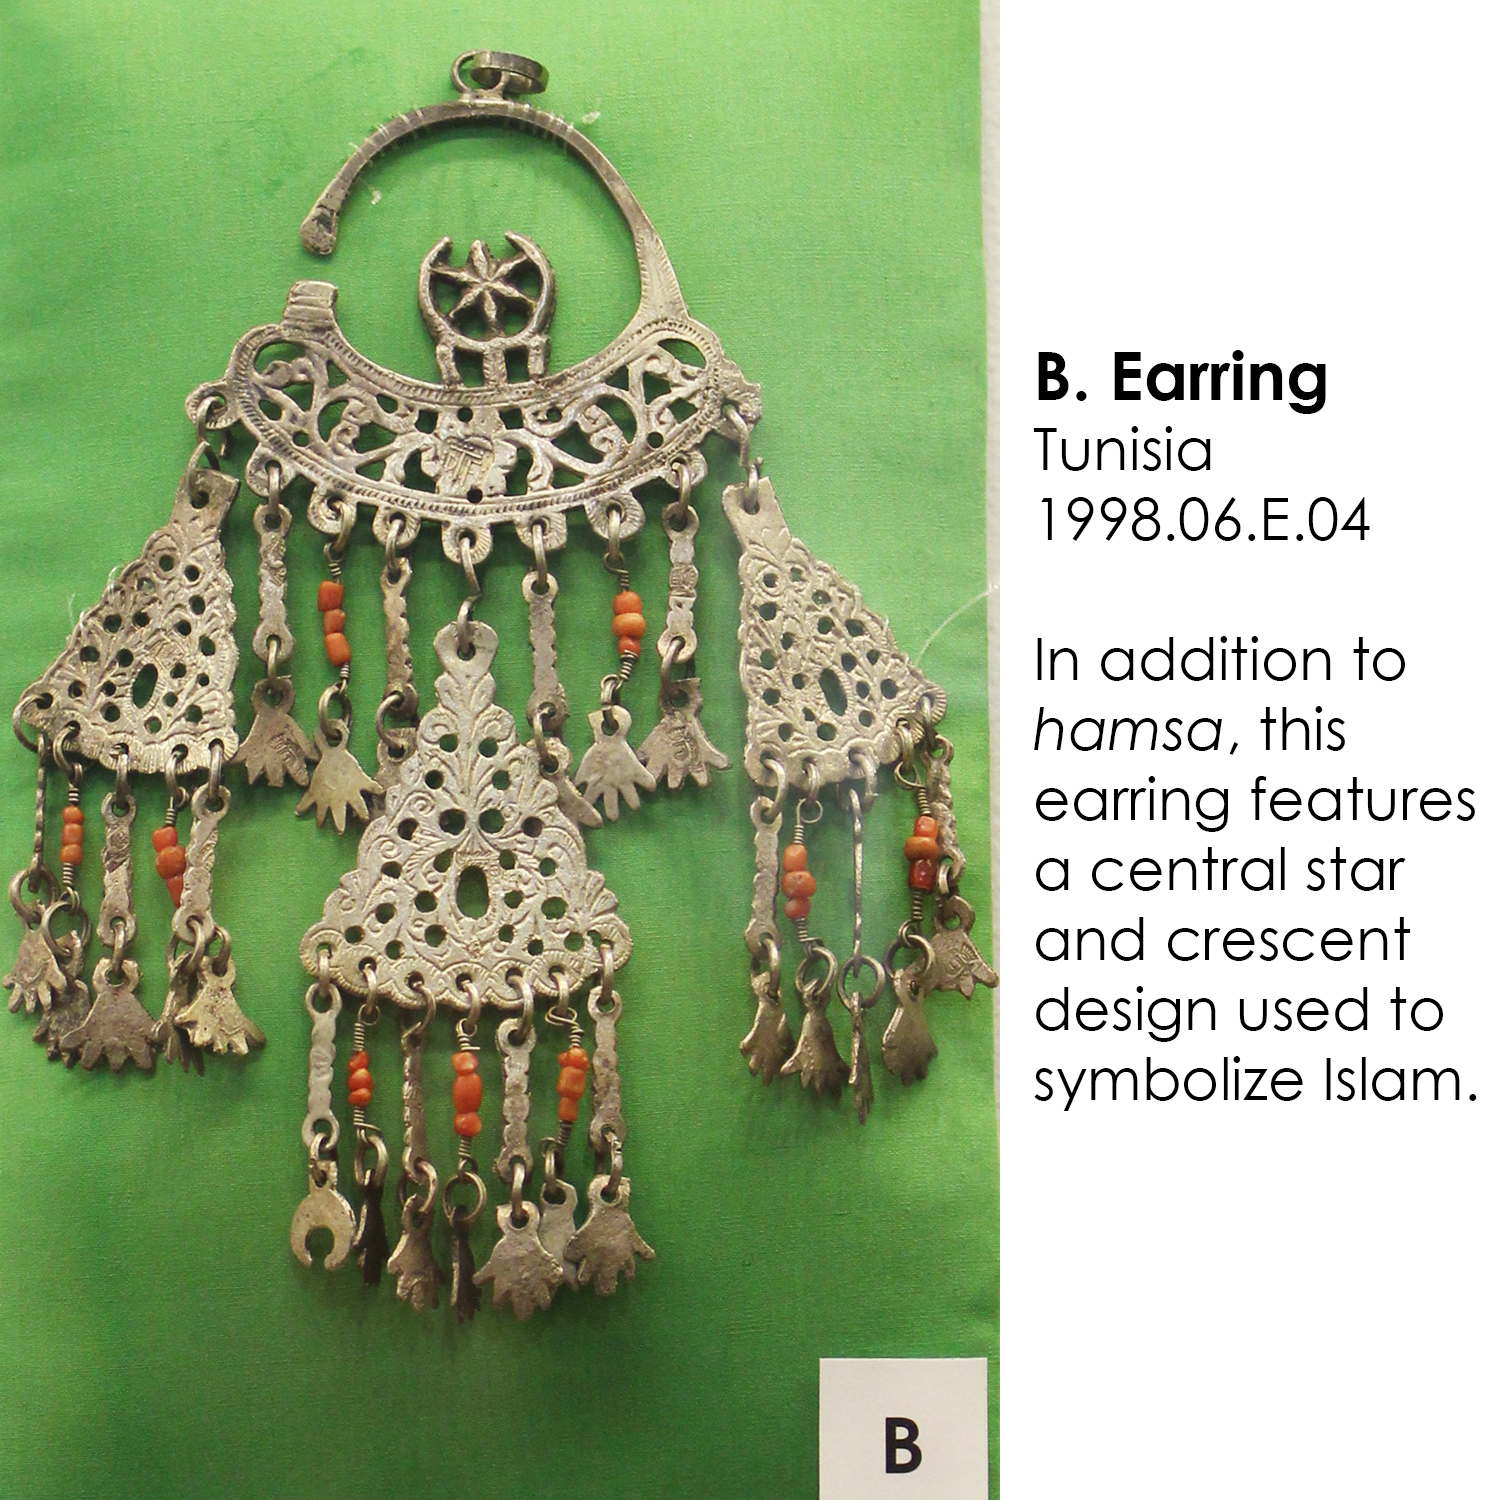 Tunisian Earring with hamsa and Islamic crescent and star